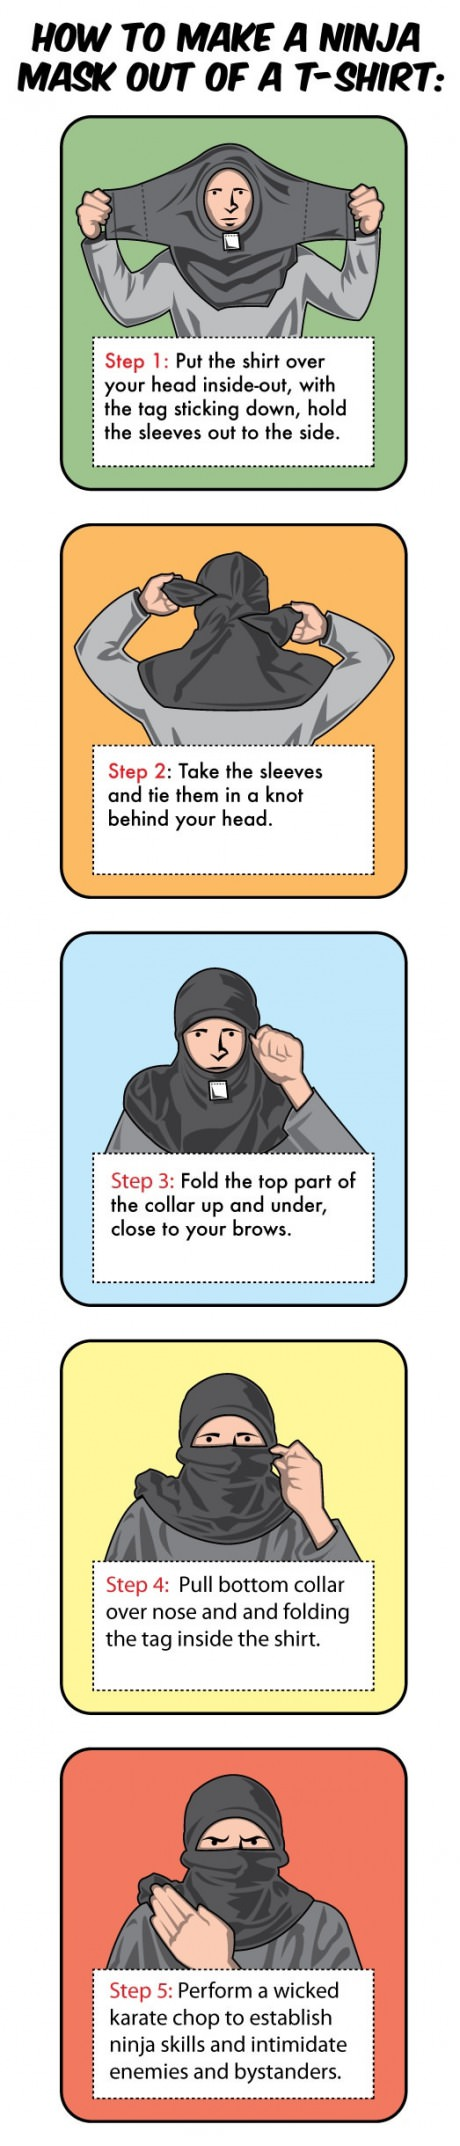 How to Make a Ninja Mask Out of a T-Shirt in Just 5 Easy Steps